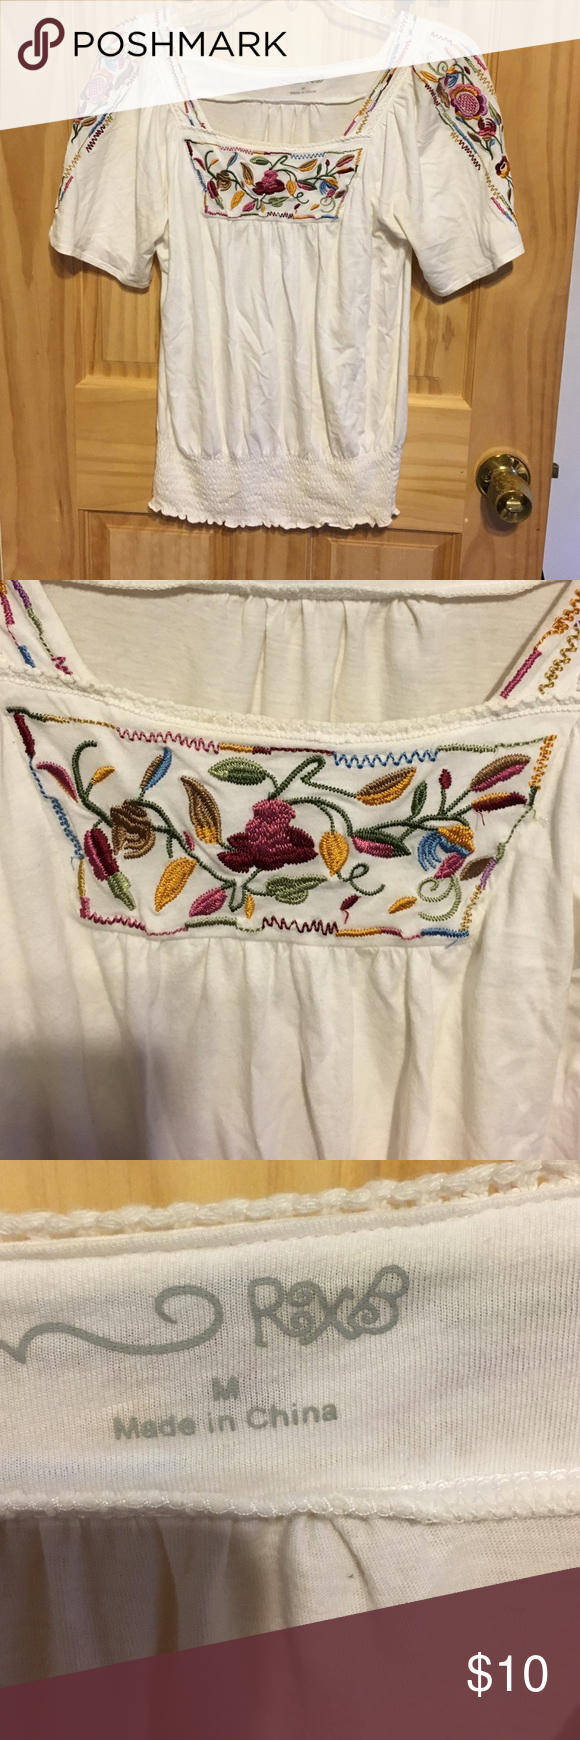 Cute White Top With Flower Patterns Flower Patterns Conditioning